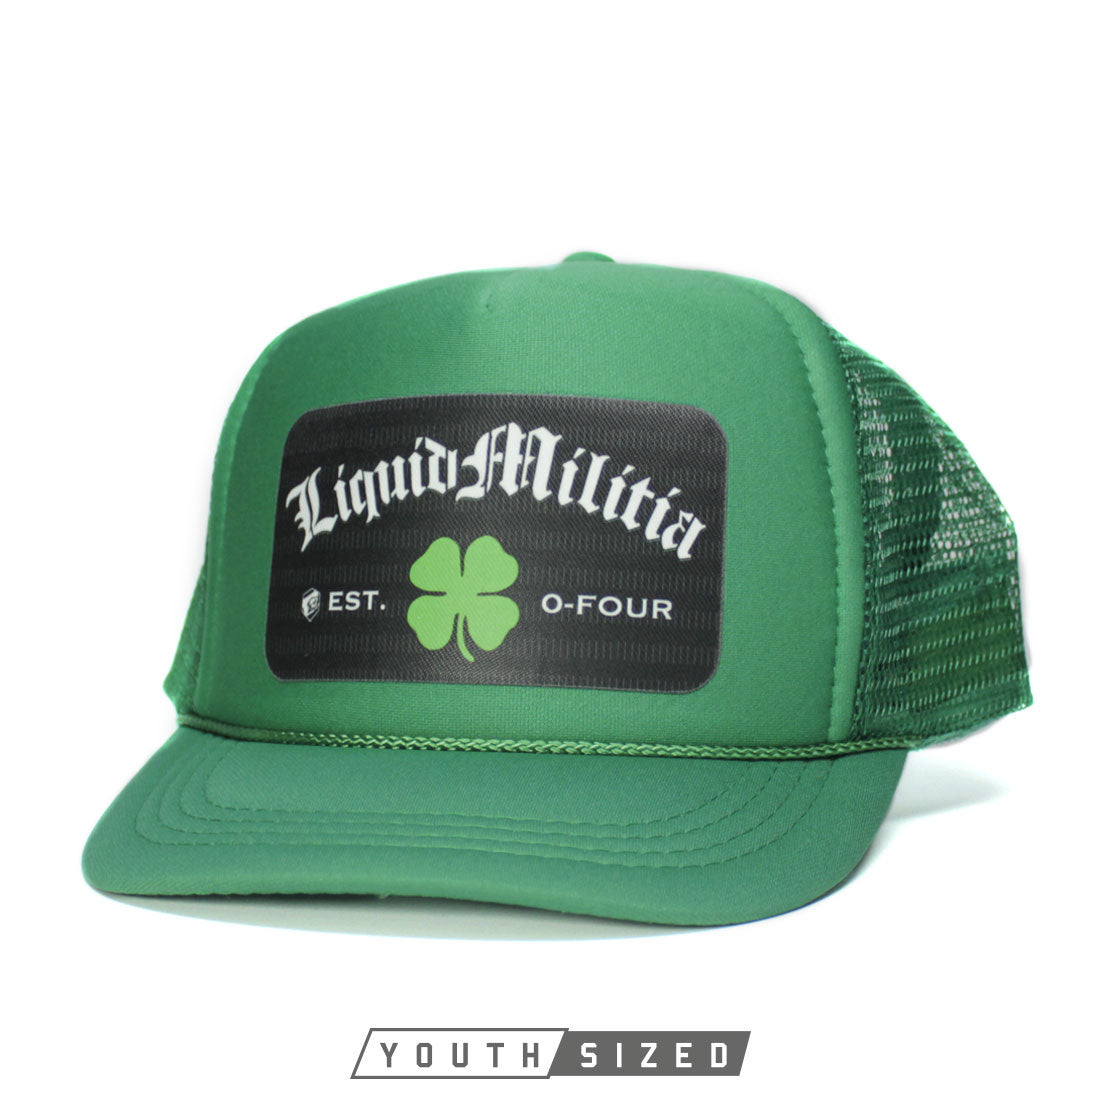 Pub Youth Curved Bill Trucker Hat in Kelly Green